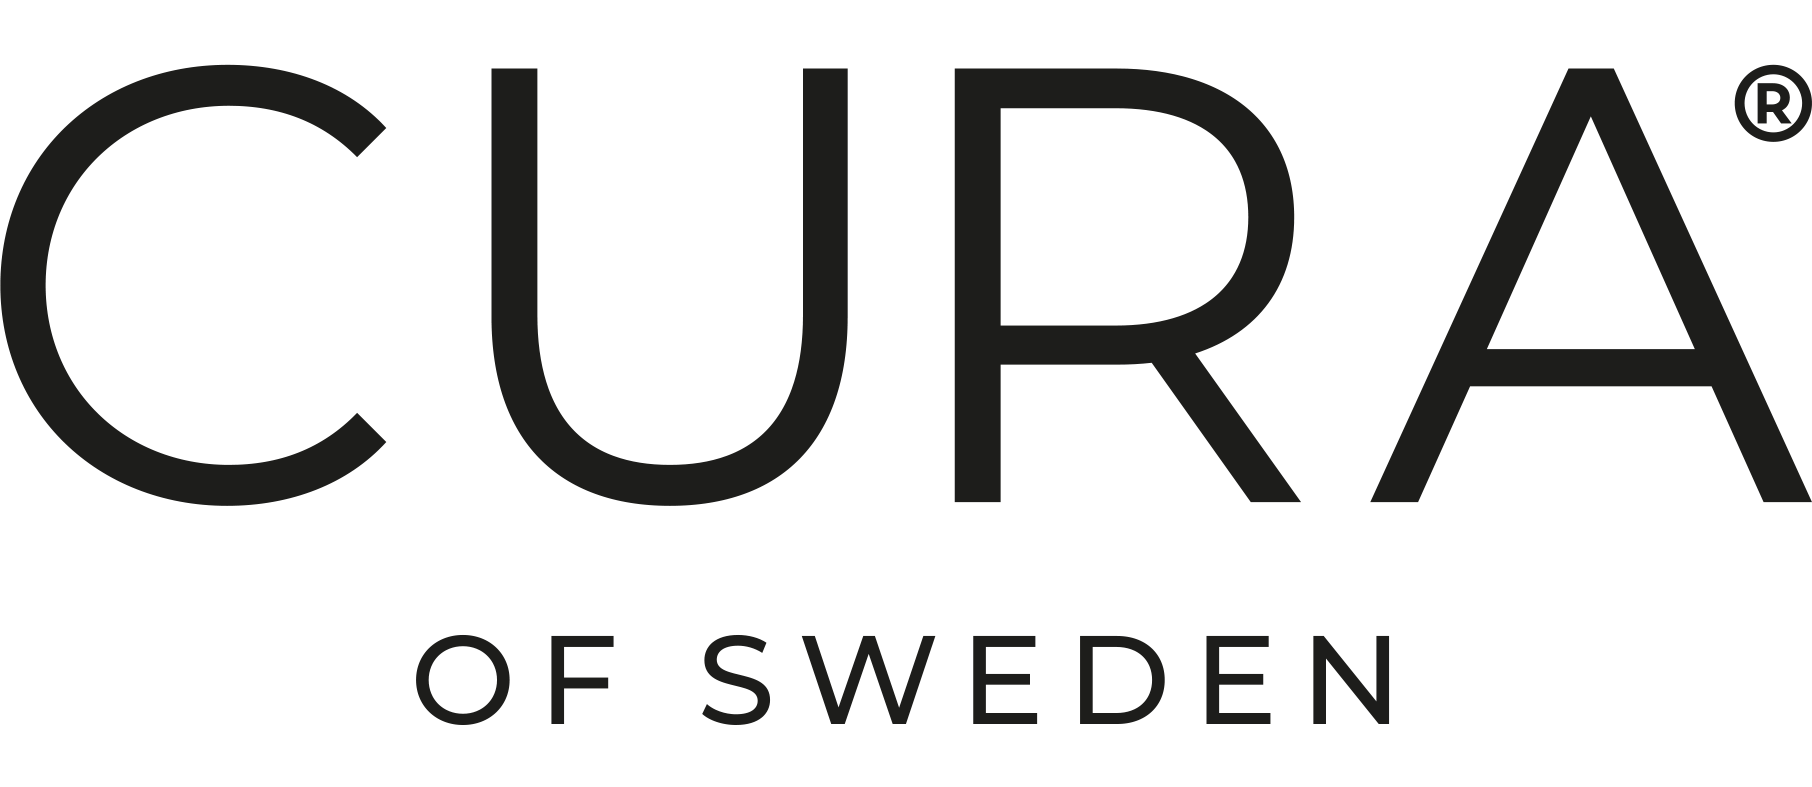 cura of sweden logotype